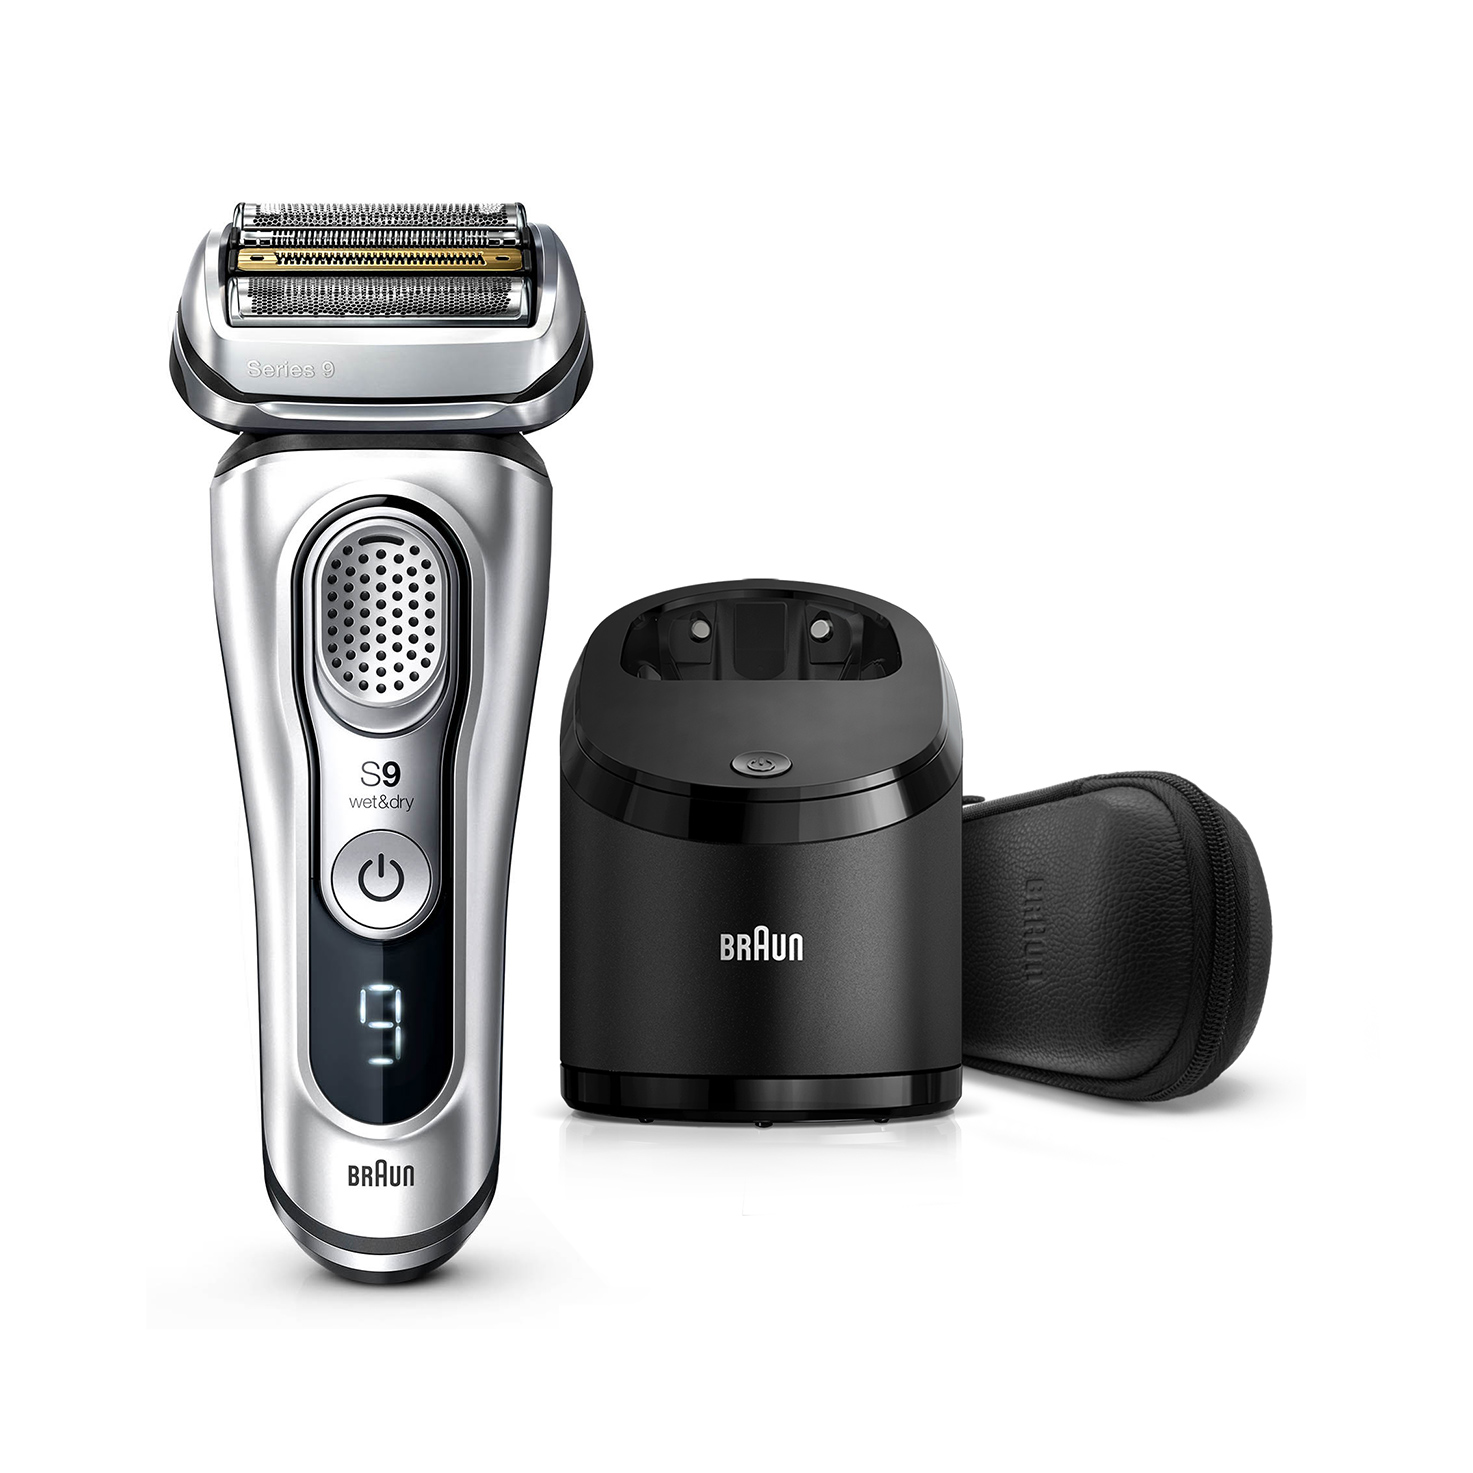 Series 9 9390cc Wet & Dry shaver with Clean & Charge station and leather travel case, silver